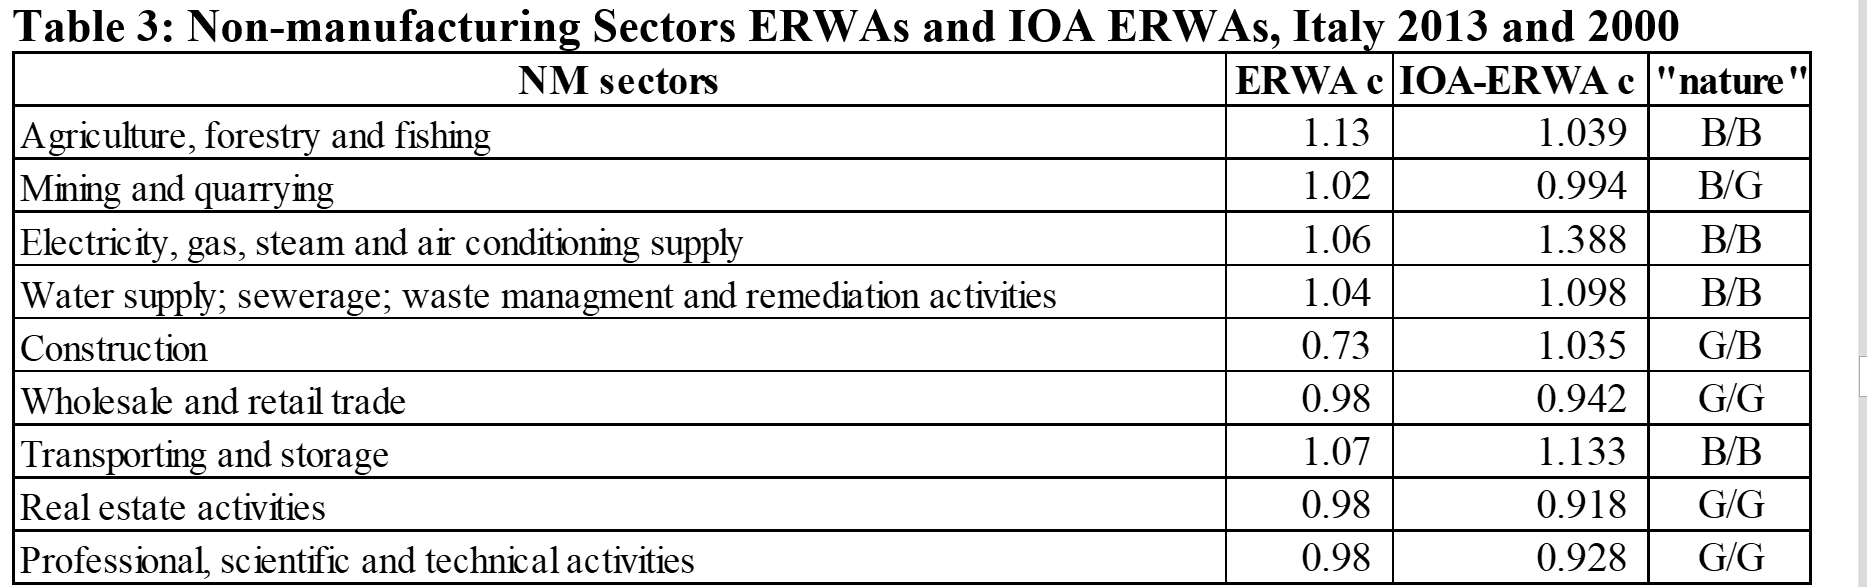 Table 3: Non-manufacturing Sectors ERWAs and IOA ERWAs, Italy 2013 and 2000